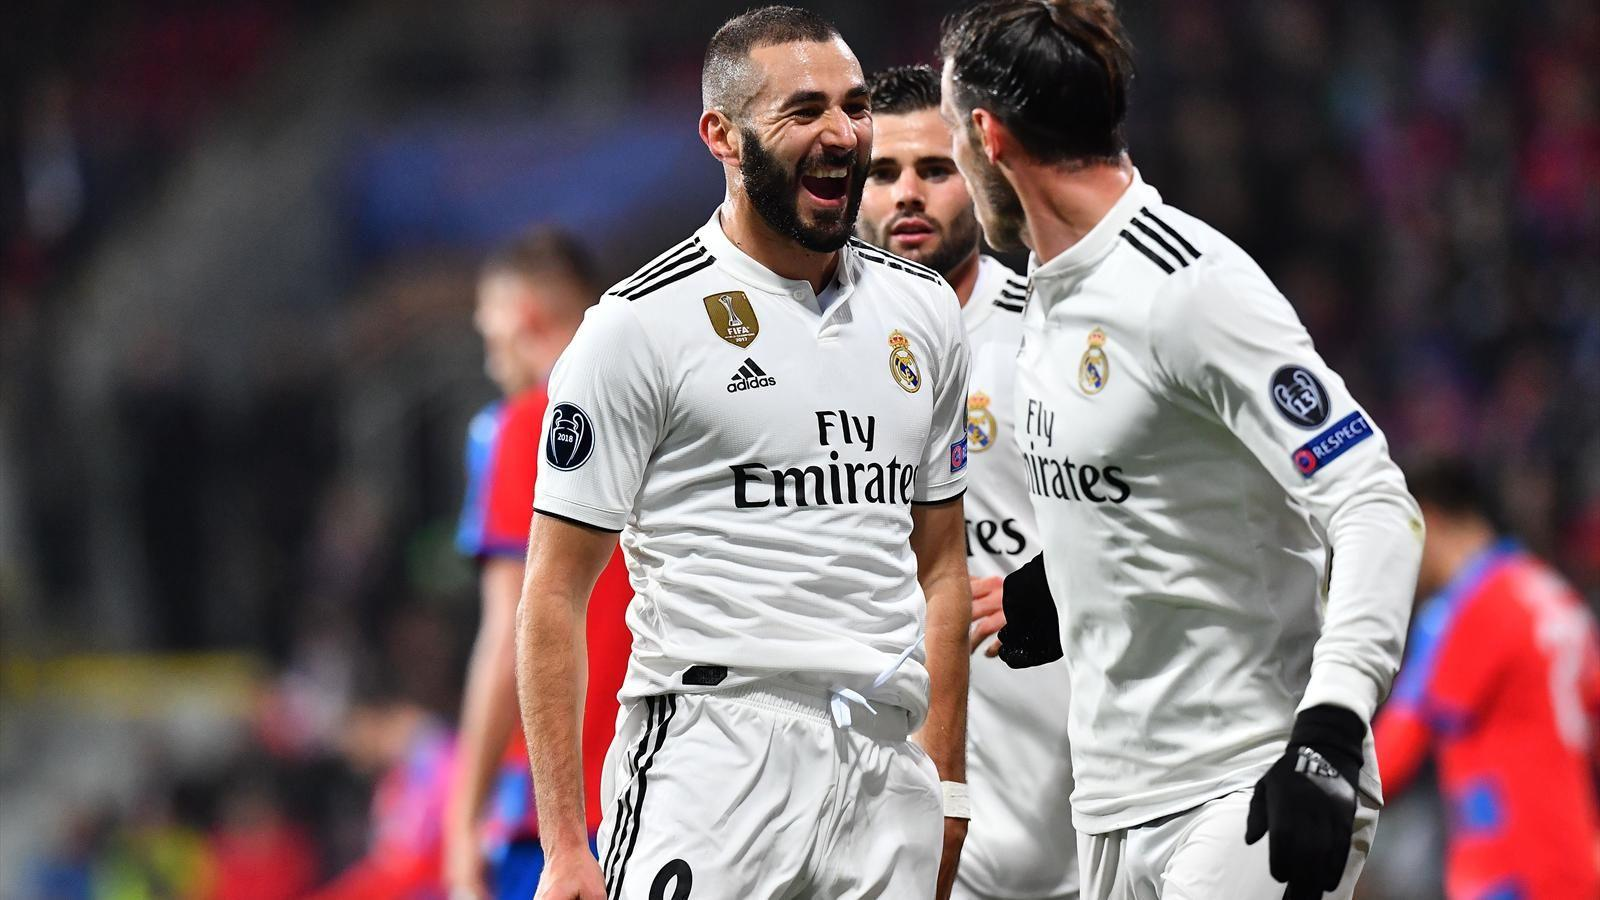 Champions League: Benzema passes 200 goals with Real Madrid ...